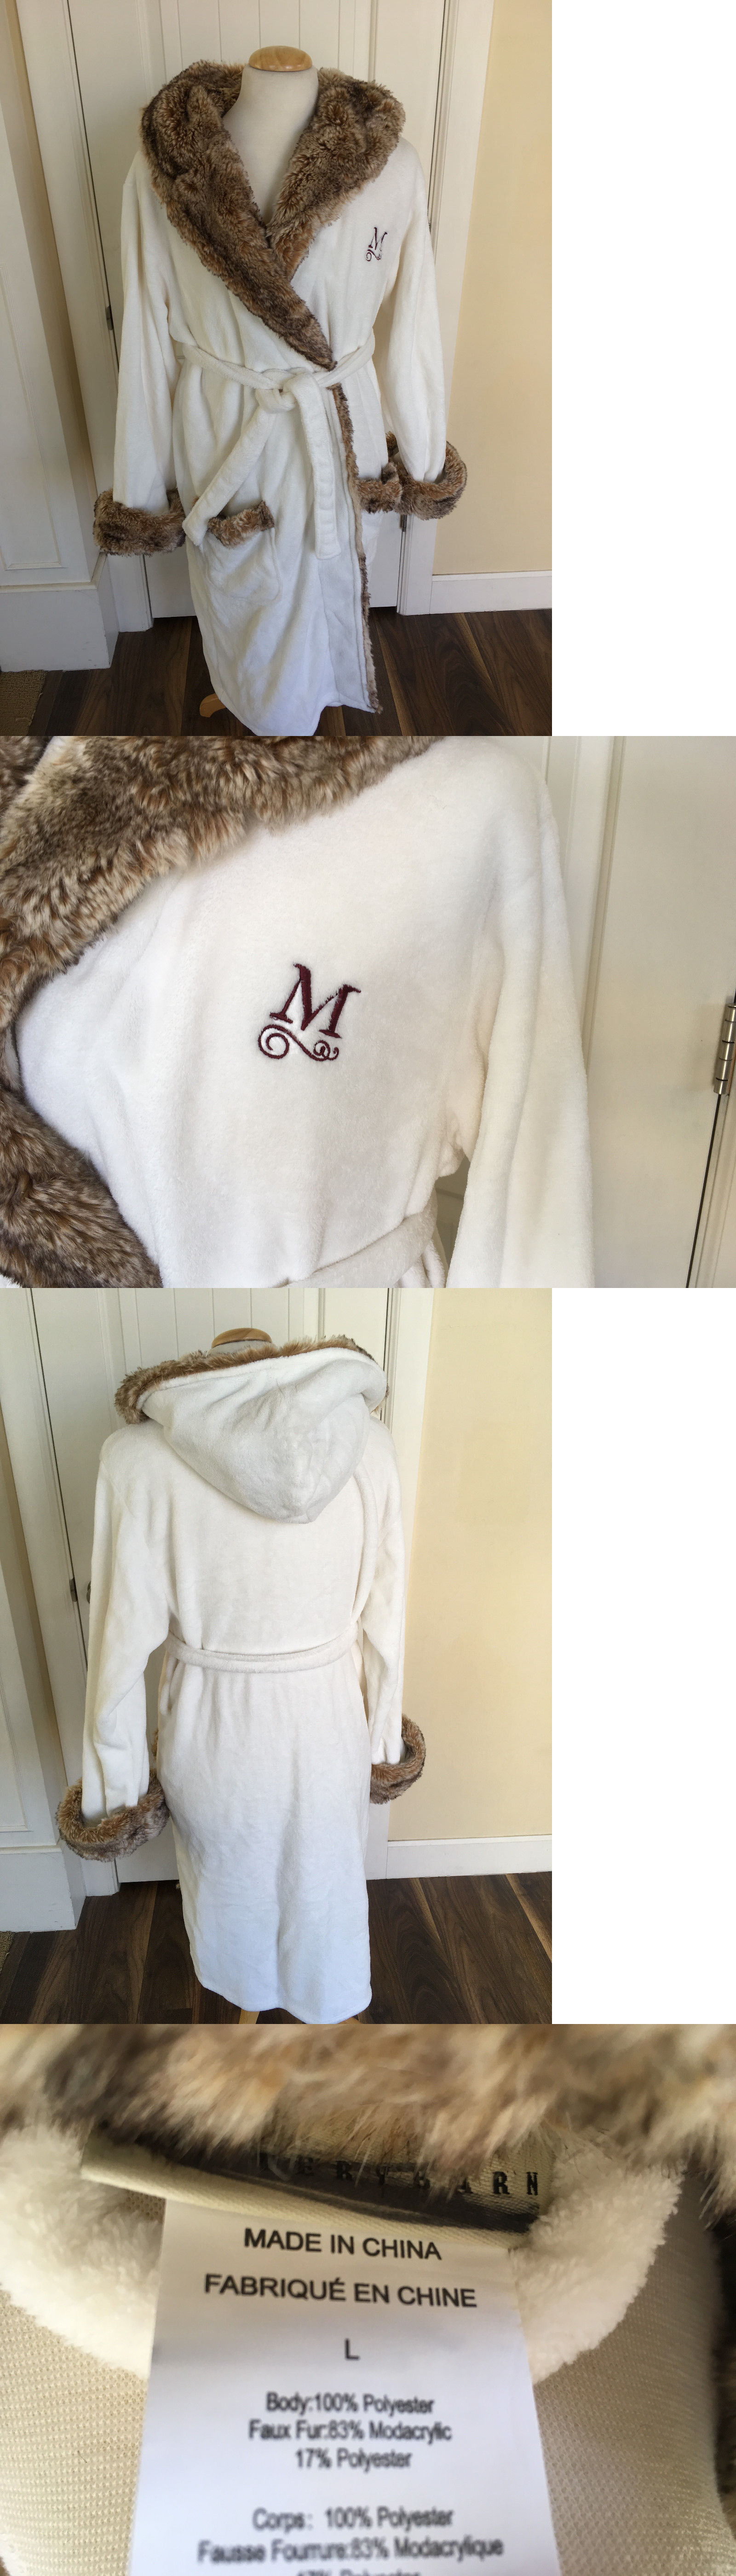 barn size embroidered mackenna monogram indian full breathtaking barns of monogrammed large pottery curtain inspired shower